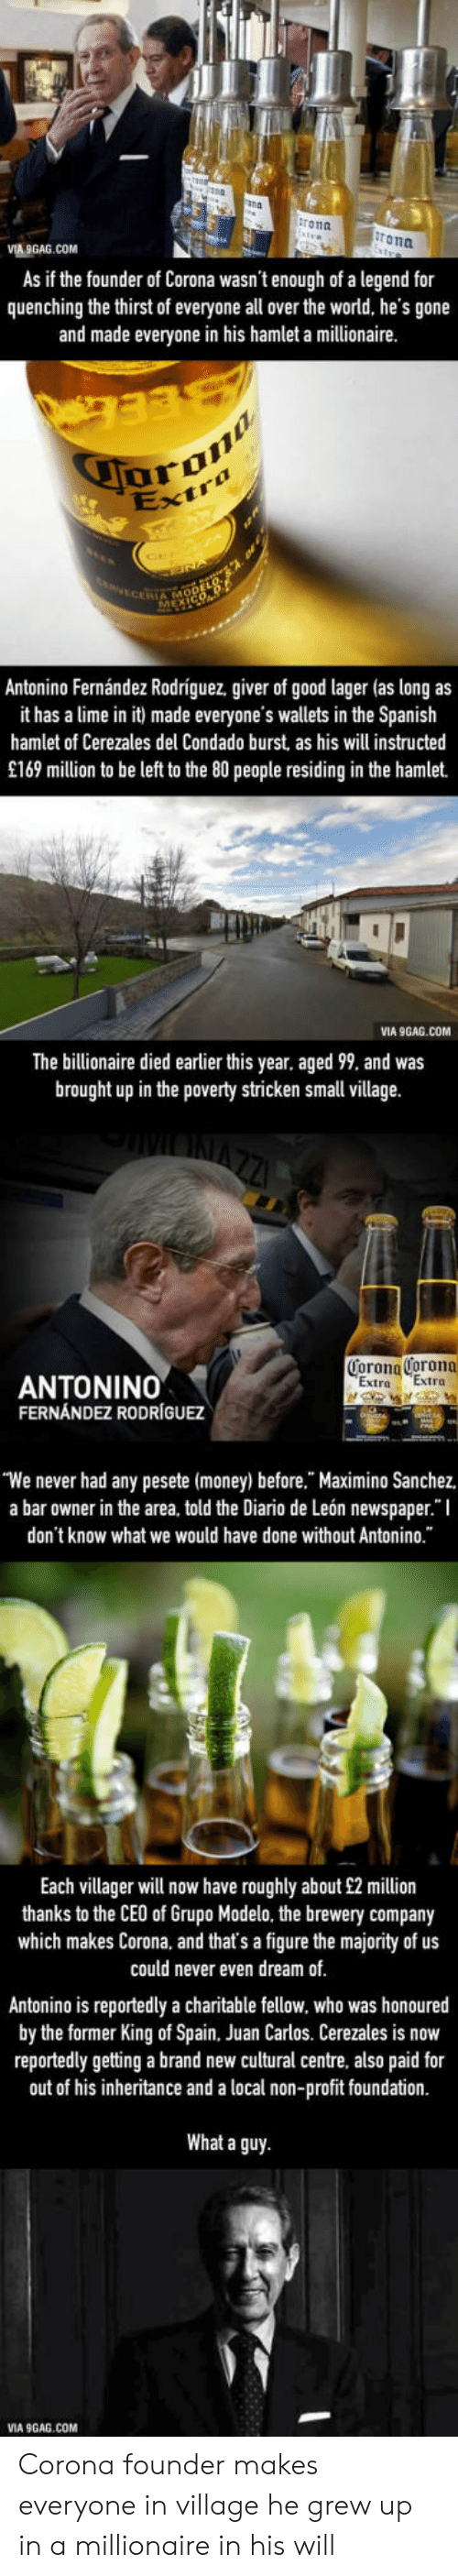 """9gag, Hamlet, and Money: ron  rona  MA GAG.COM  As if the founder of Corona wasn't enough of a legend for  quenching the thirst of everyone all over the world, he's gone  and made everyone in his hamlet a millionaire  aran  IA MO  Antonino Fernández Rodriguez, giver of good lager (as long as  it has a lime in it made everyone's wallets in the Spanish  hamlet of Cerezales his will instructed  del Condado burst as  £169 million to be left to the 80 people residing in the hamlet.  VIA 9GAG.COM  The billionaire died earlier this year, aged 99, and was  brought up in the poverty stricken small village.  Corona Corona  Extra Extra  ANTONINO  FERNÁNDEZ RODRÍGUEZ  'We never had any pesete (money) before."""" Maximino Sanchez  a bar owner in the area, told the Diario de León newspaper."""" I  don't know what we would have done without Antonino.""""  Each villager will now have roughly about £2 million  thanks to the CEO of Grupo Modelo, the brewery company  which makes Corona, and that's a figure the majority of us  could never even dream of  Antonino is reportedly a charitable fellow, who was honoured  by the former King ofSpain, Juan Carlos. Cerezales is now  reportedly getting a brand new cultural centre, also paid for  out of his inheritance and a local non-profit foundation.  What a guy  VIA 9GAG.COM Corona founder makes everyone in village he grew up in a millionaire in his will"""